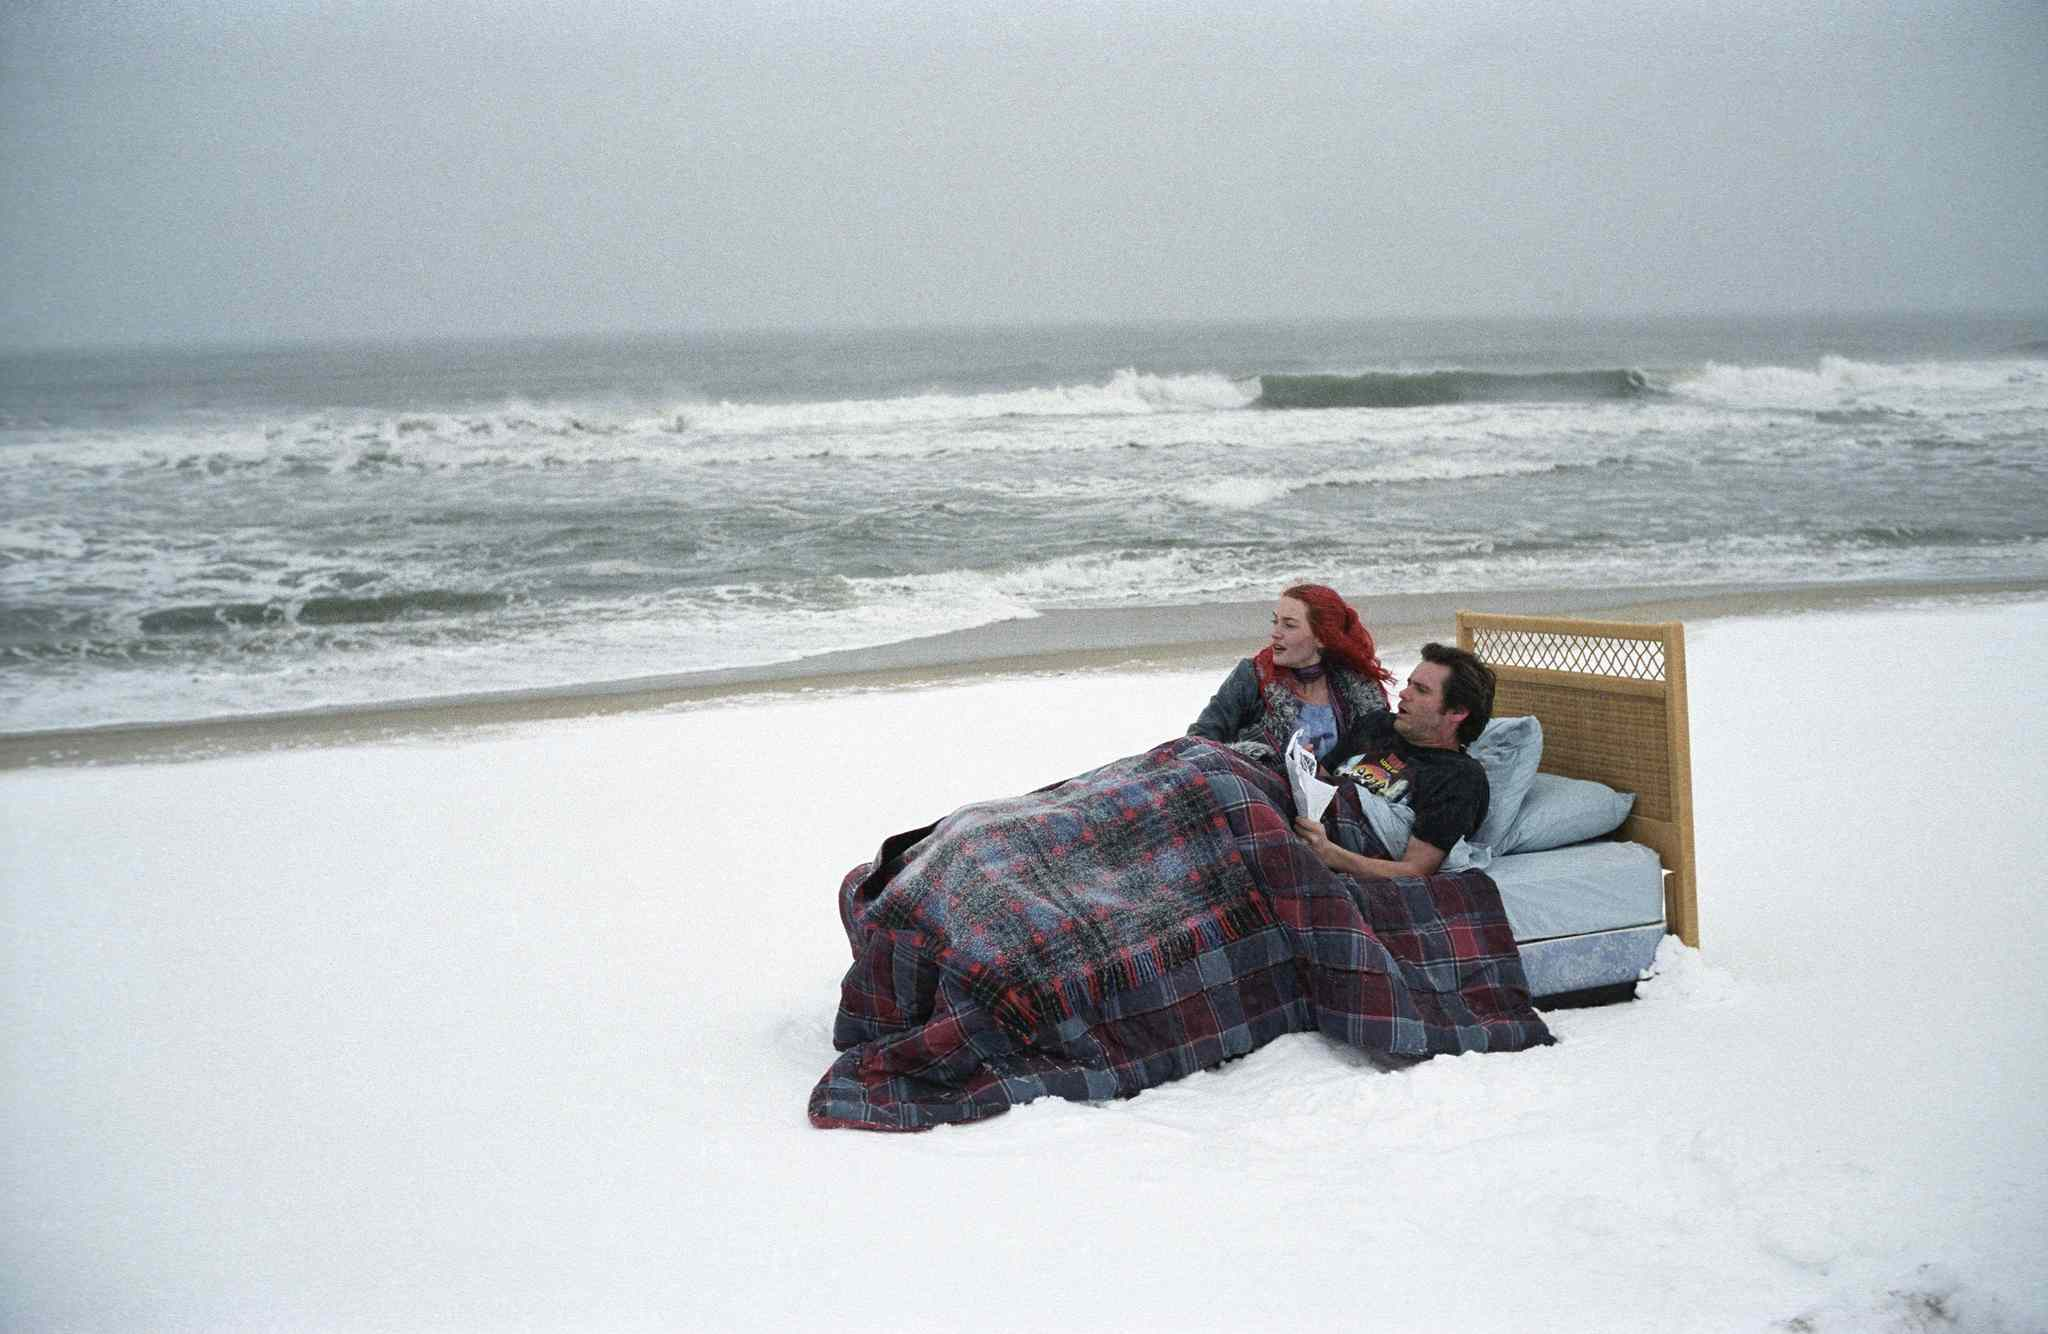 Jim Carrey and Kate Winslet wake up in a bed on the beach, still from